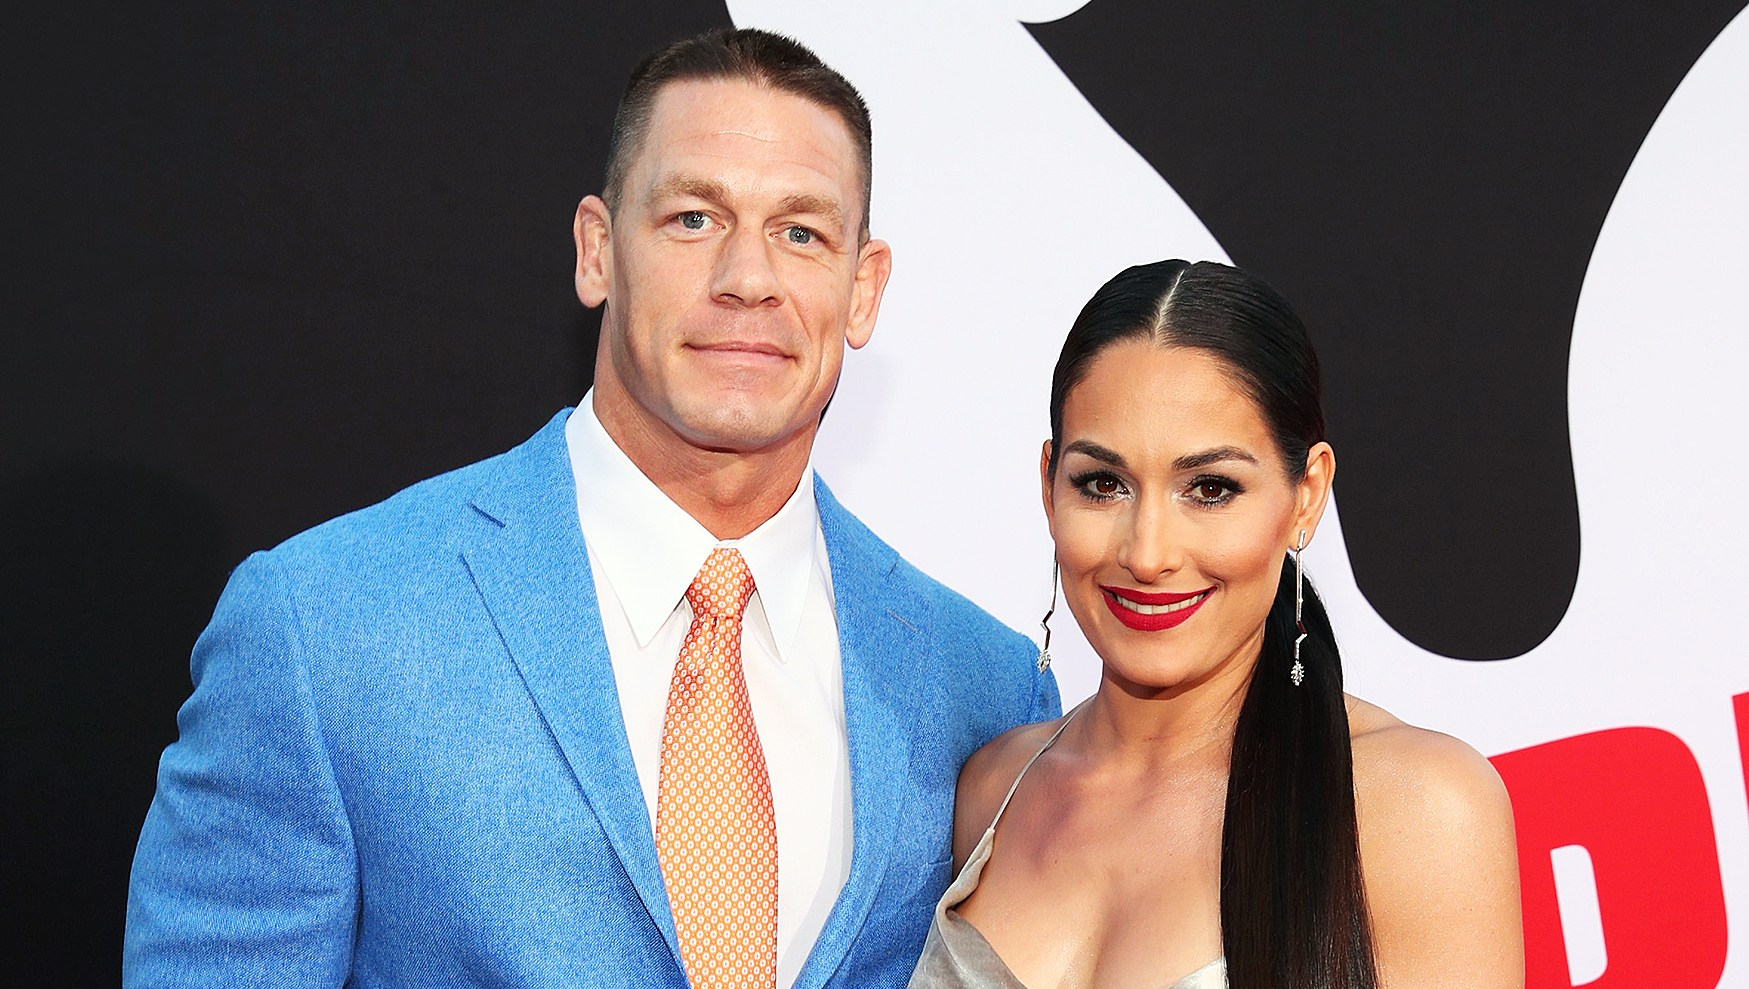 John Cena Nikki Bella Could Get Back Together